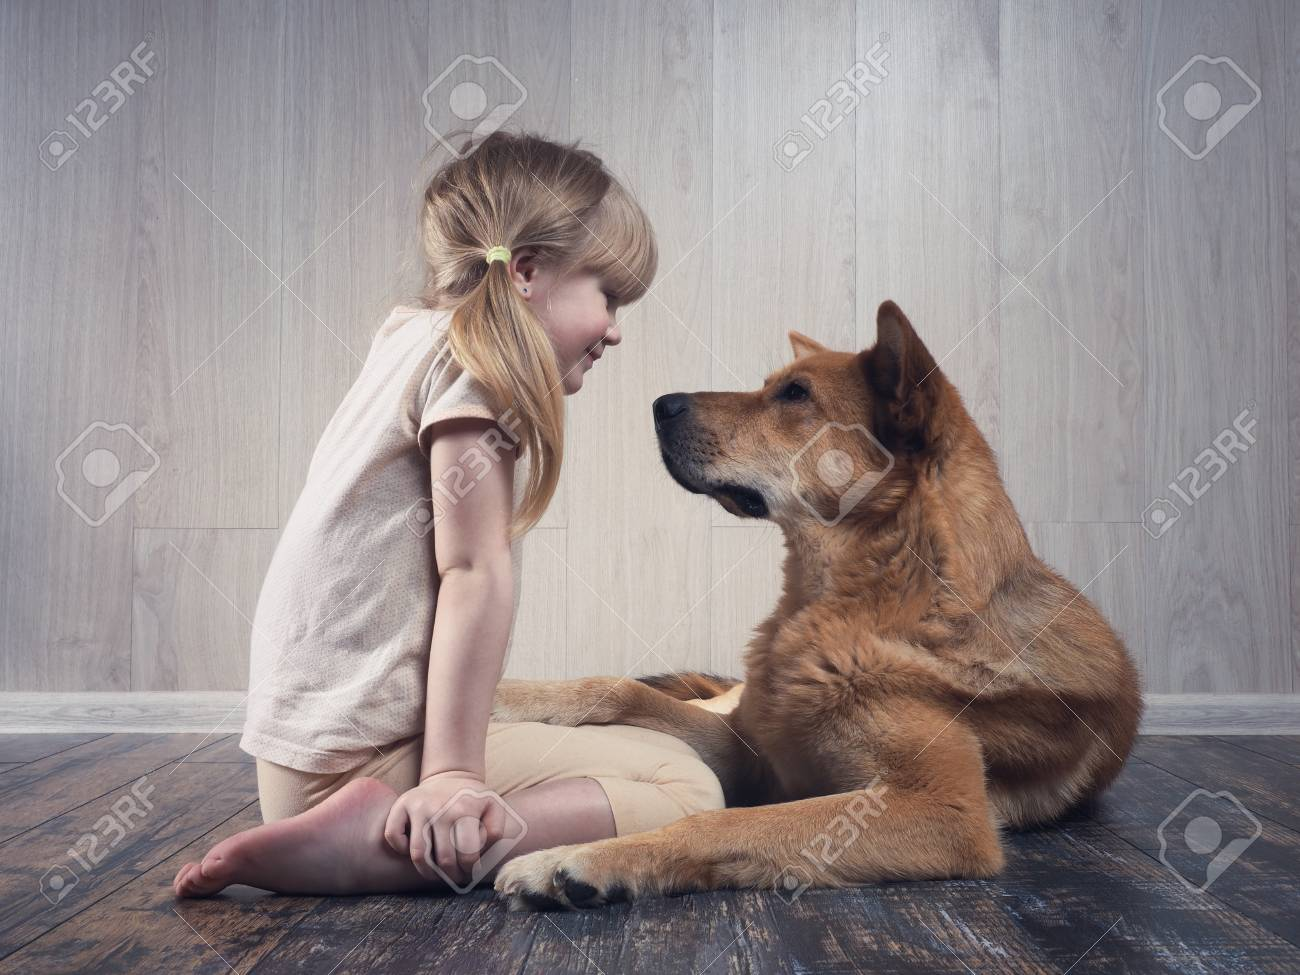 A wonderful little girl and a huge dog communicate with each other. The dog is terrible, but kind. An animal loves a child. - 96147348